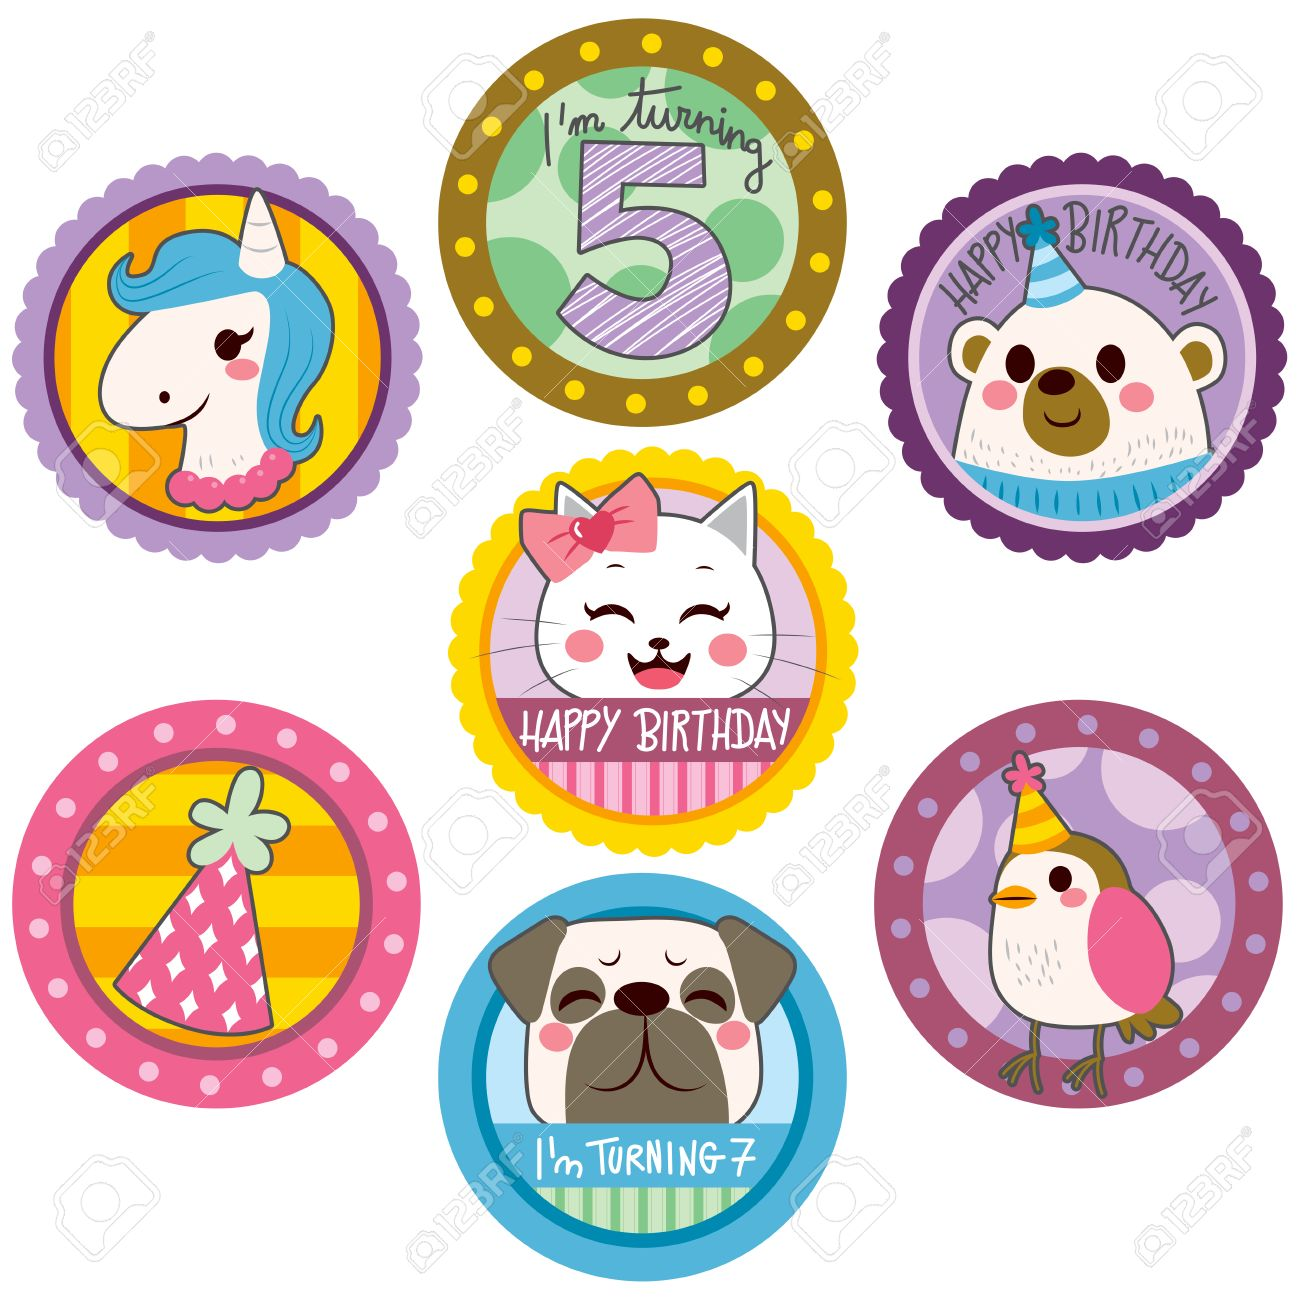 funny happy birthday stickers ; 55479693-happy-birthday-cute-stickers-of-funny-animals-and-party-elements